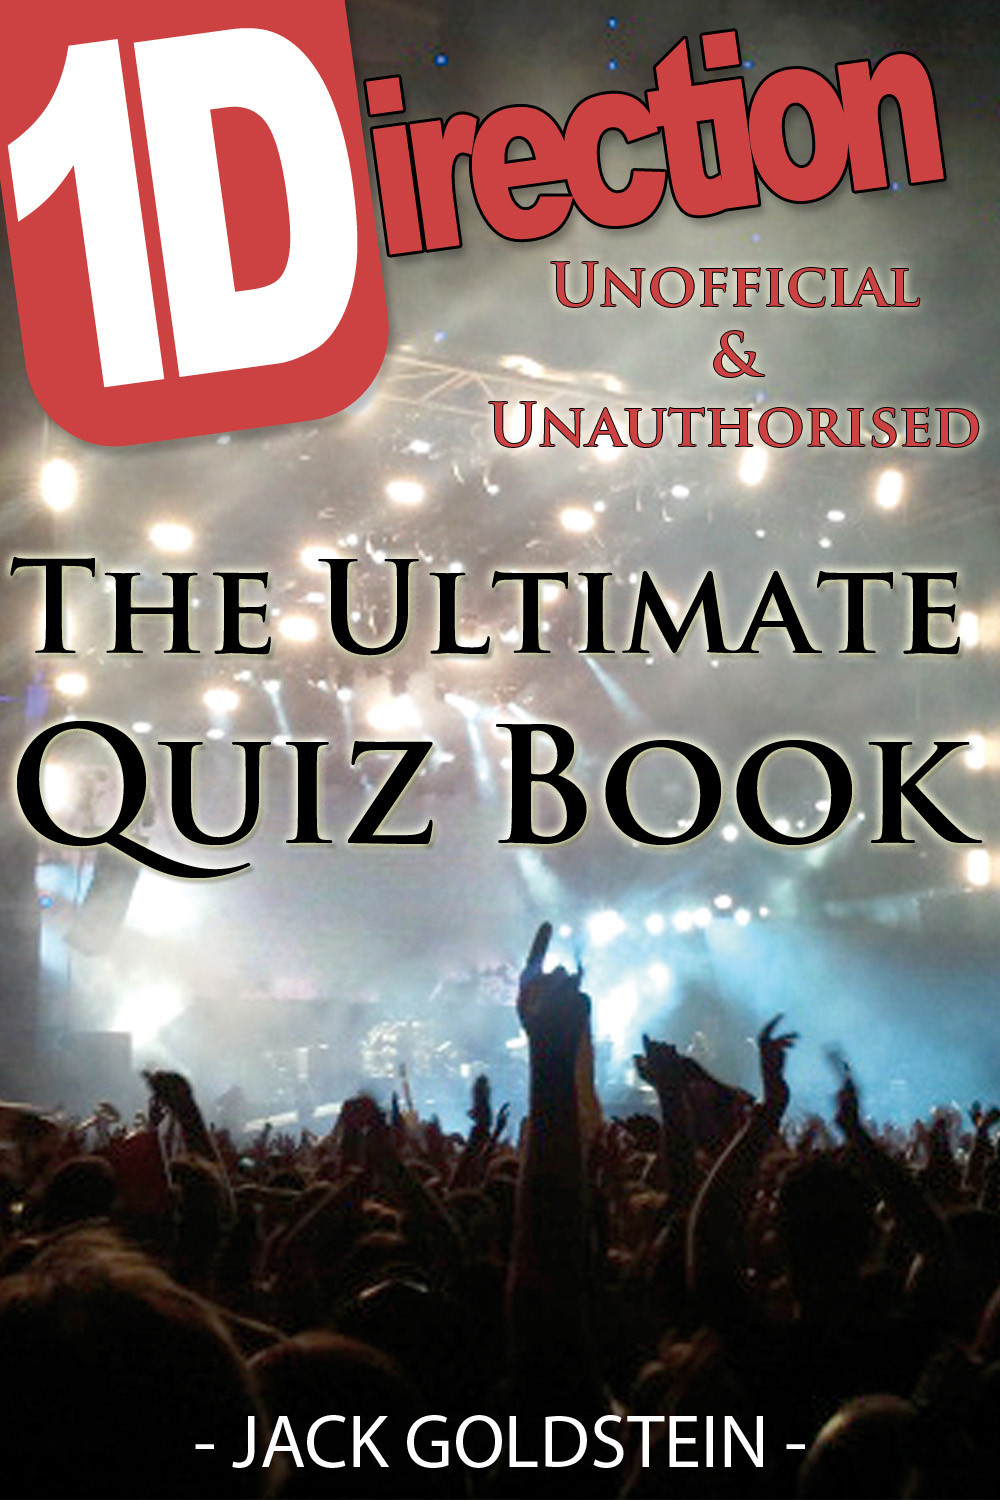 1D - One Direction: The Ultimate Quiz Book By: Jack Goldstein